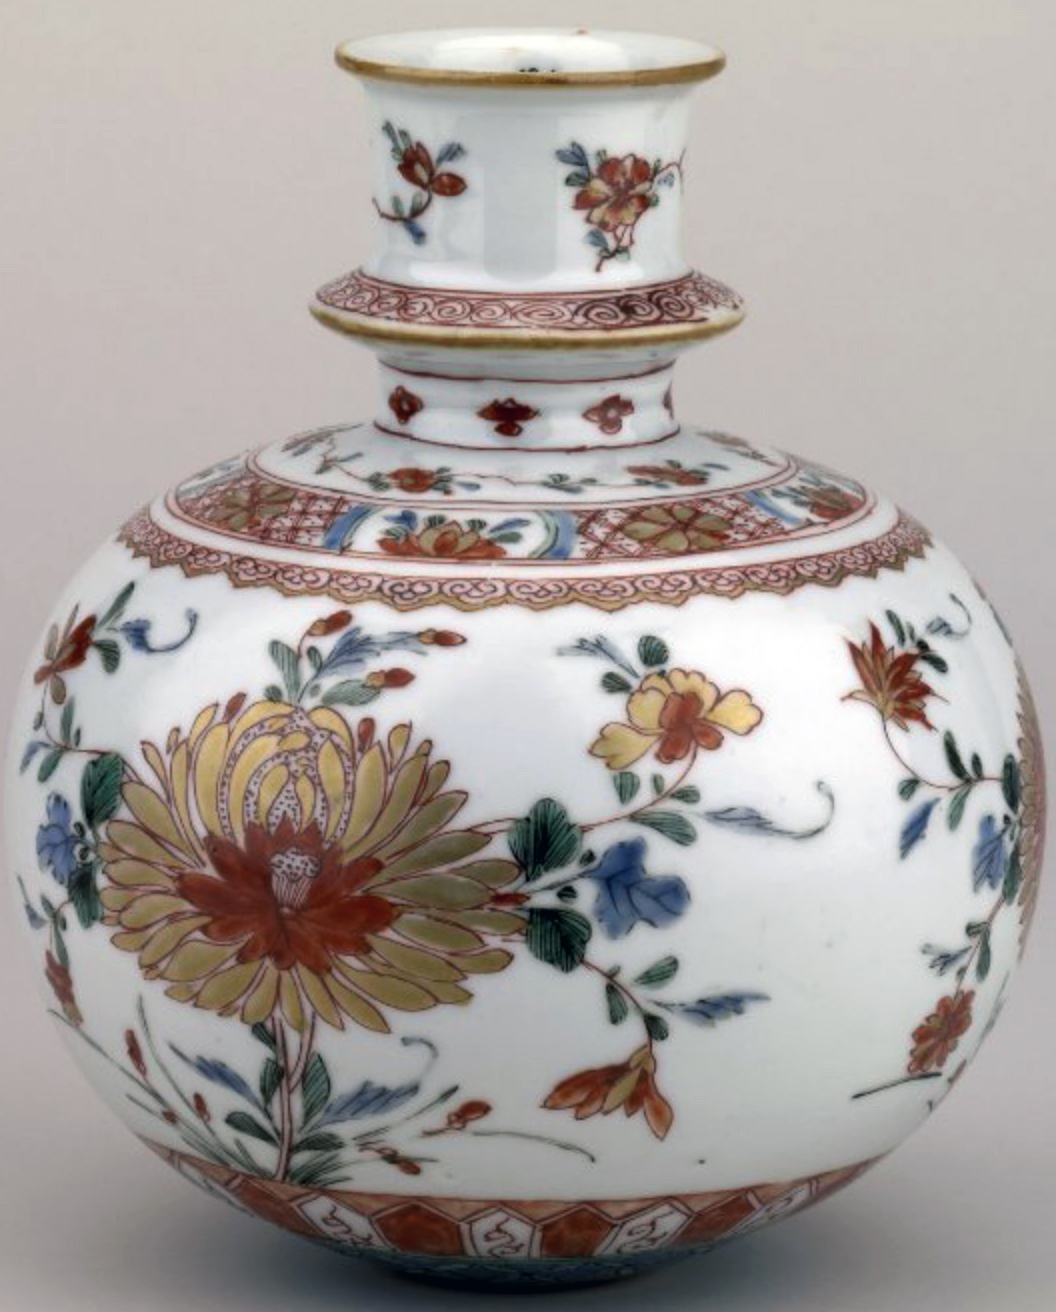 Porcelain hookah (water pipe) made in Jingdezhen, China for the Indian market, c. 1662-1722. Repository: British Museum, London